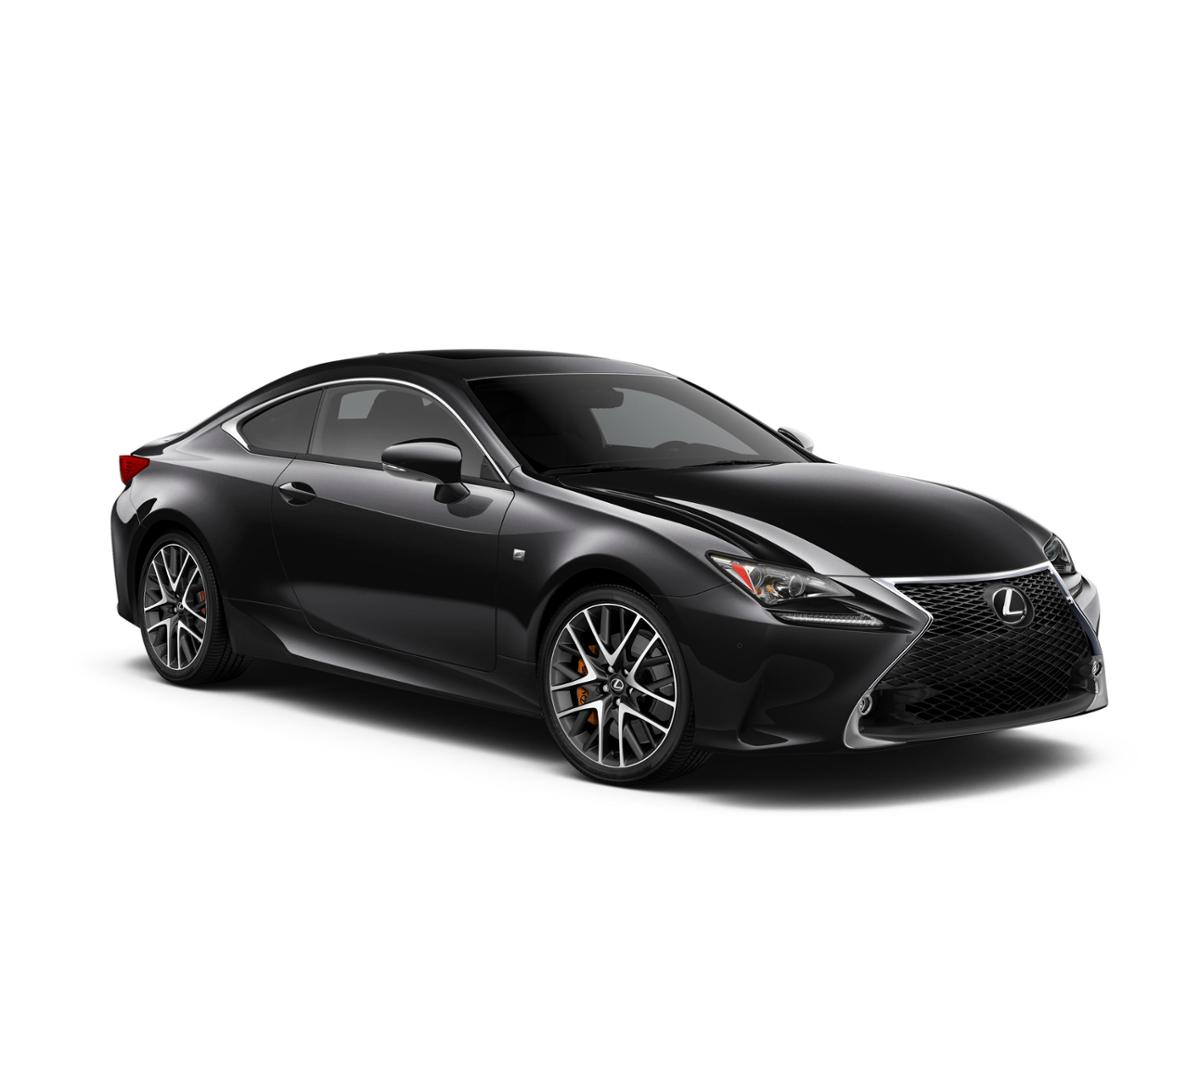 2017 Lexus Rc Exterior: 2017 Lexus RC 300 For Sale In Danvers